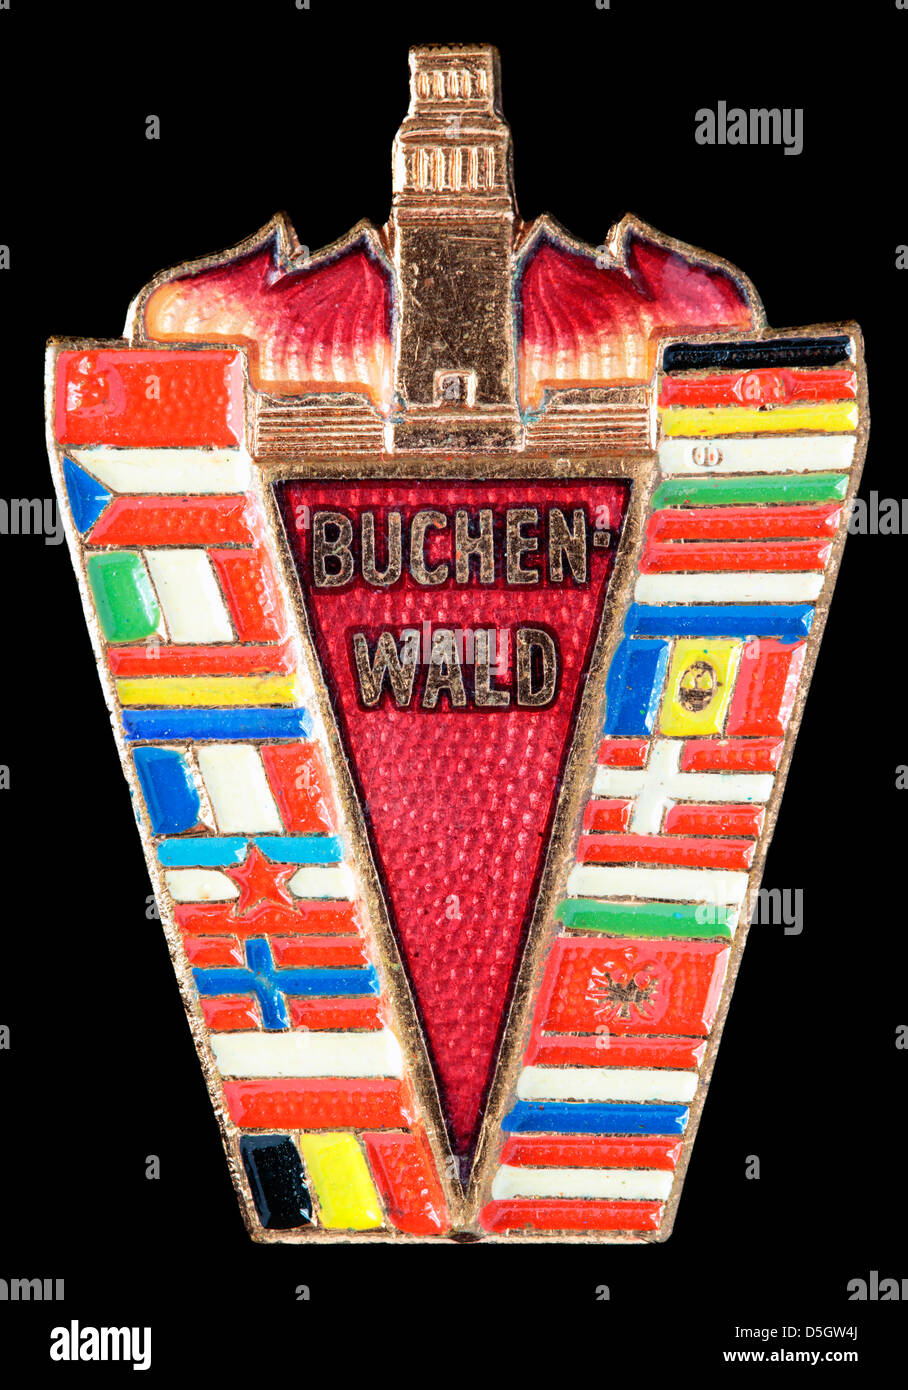 Buchenwald concentration memorial camp pin badge, East Germany, GDR - Stock Image